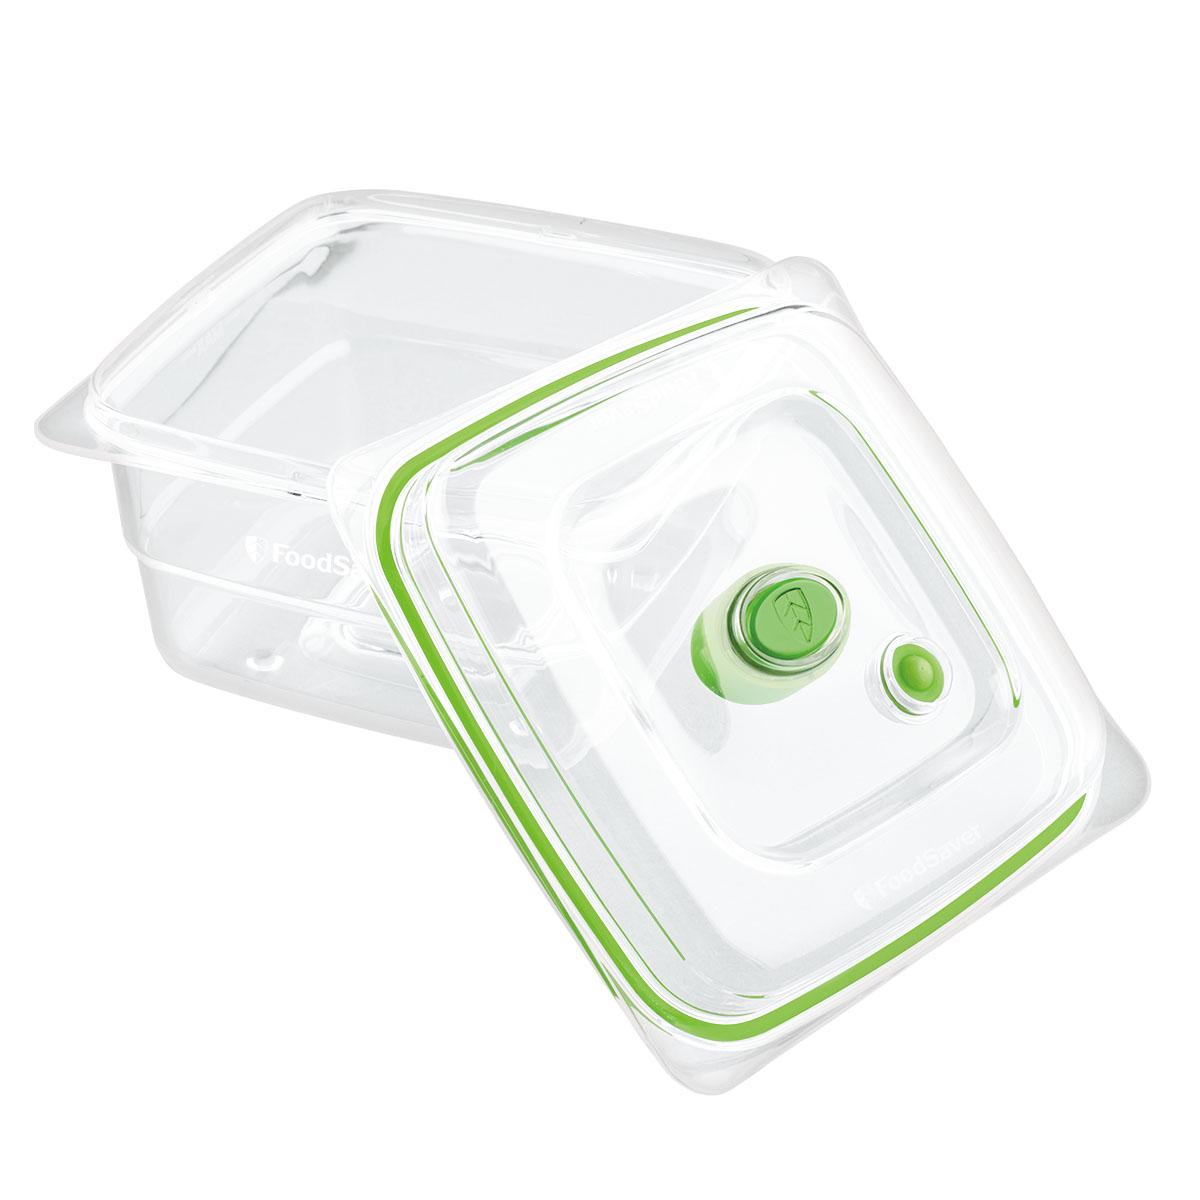 The FoodSaver Fresh 5 Cup Container